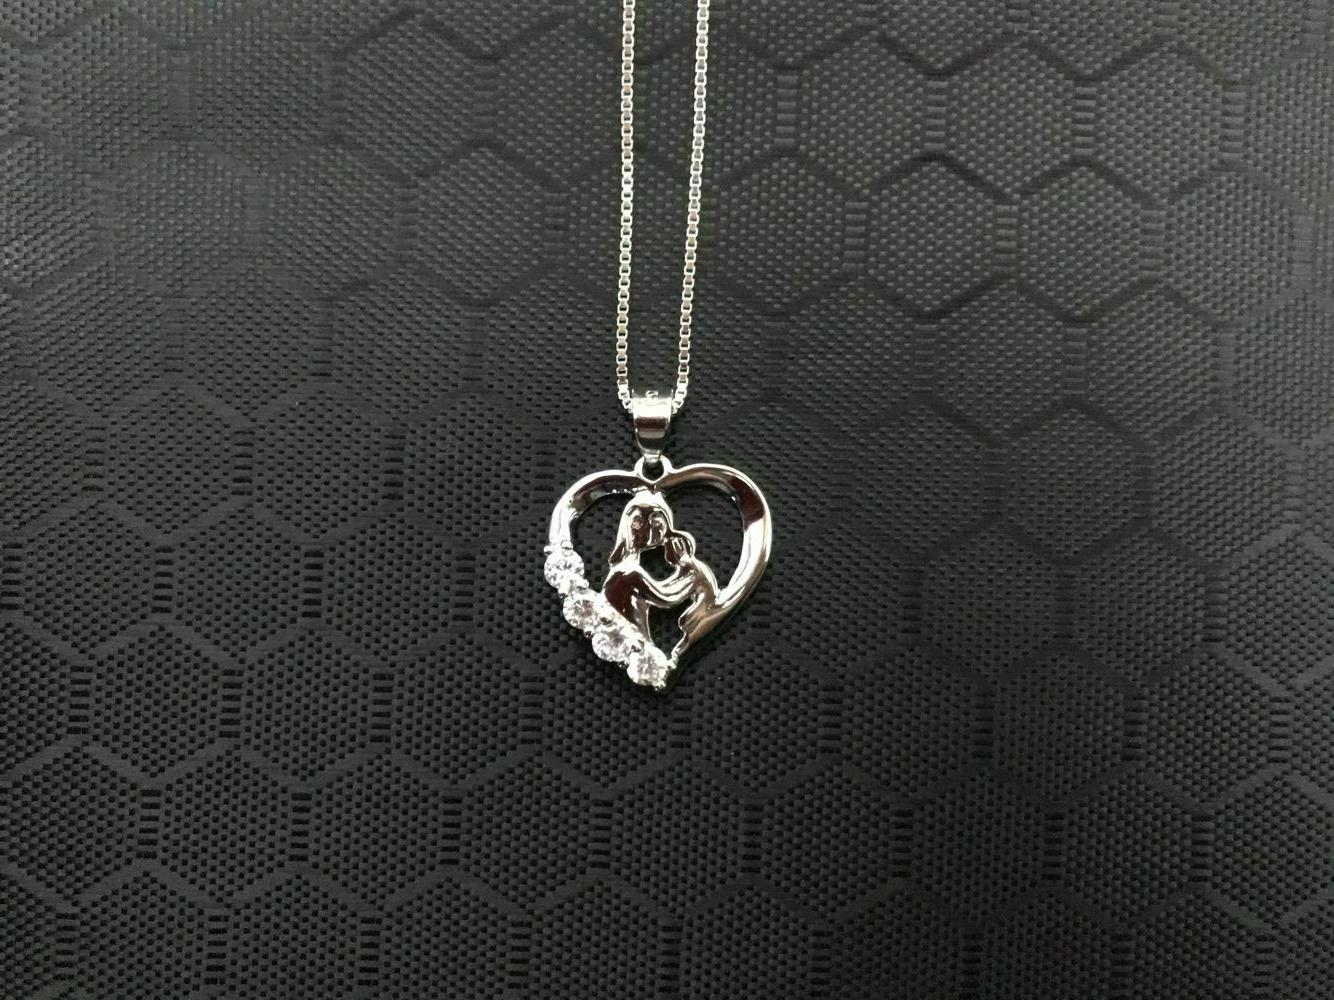 S925 Mother and Child Necklace, Heart & Son for Her, 18""